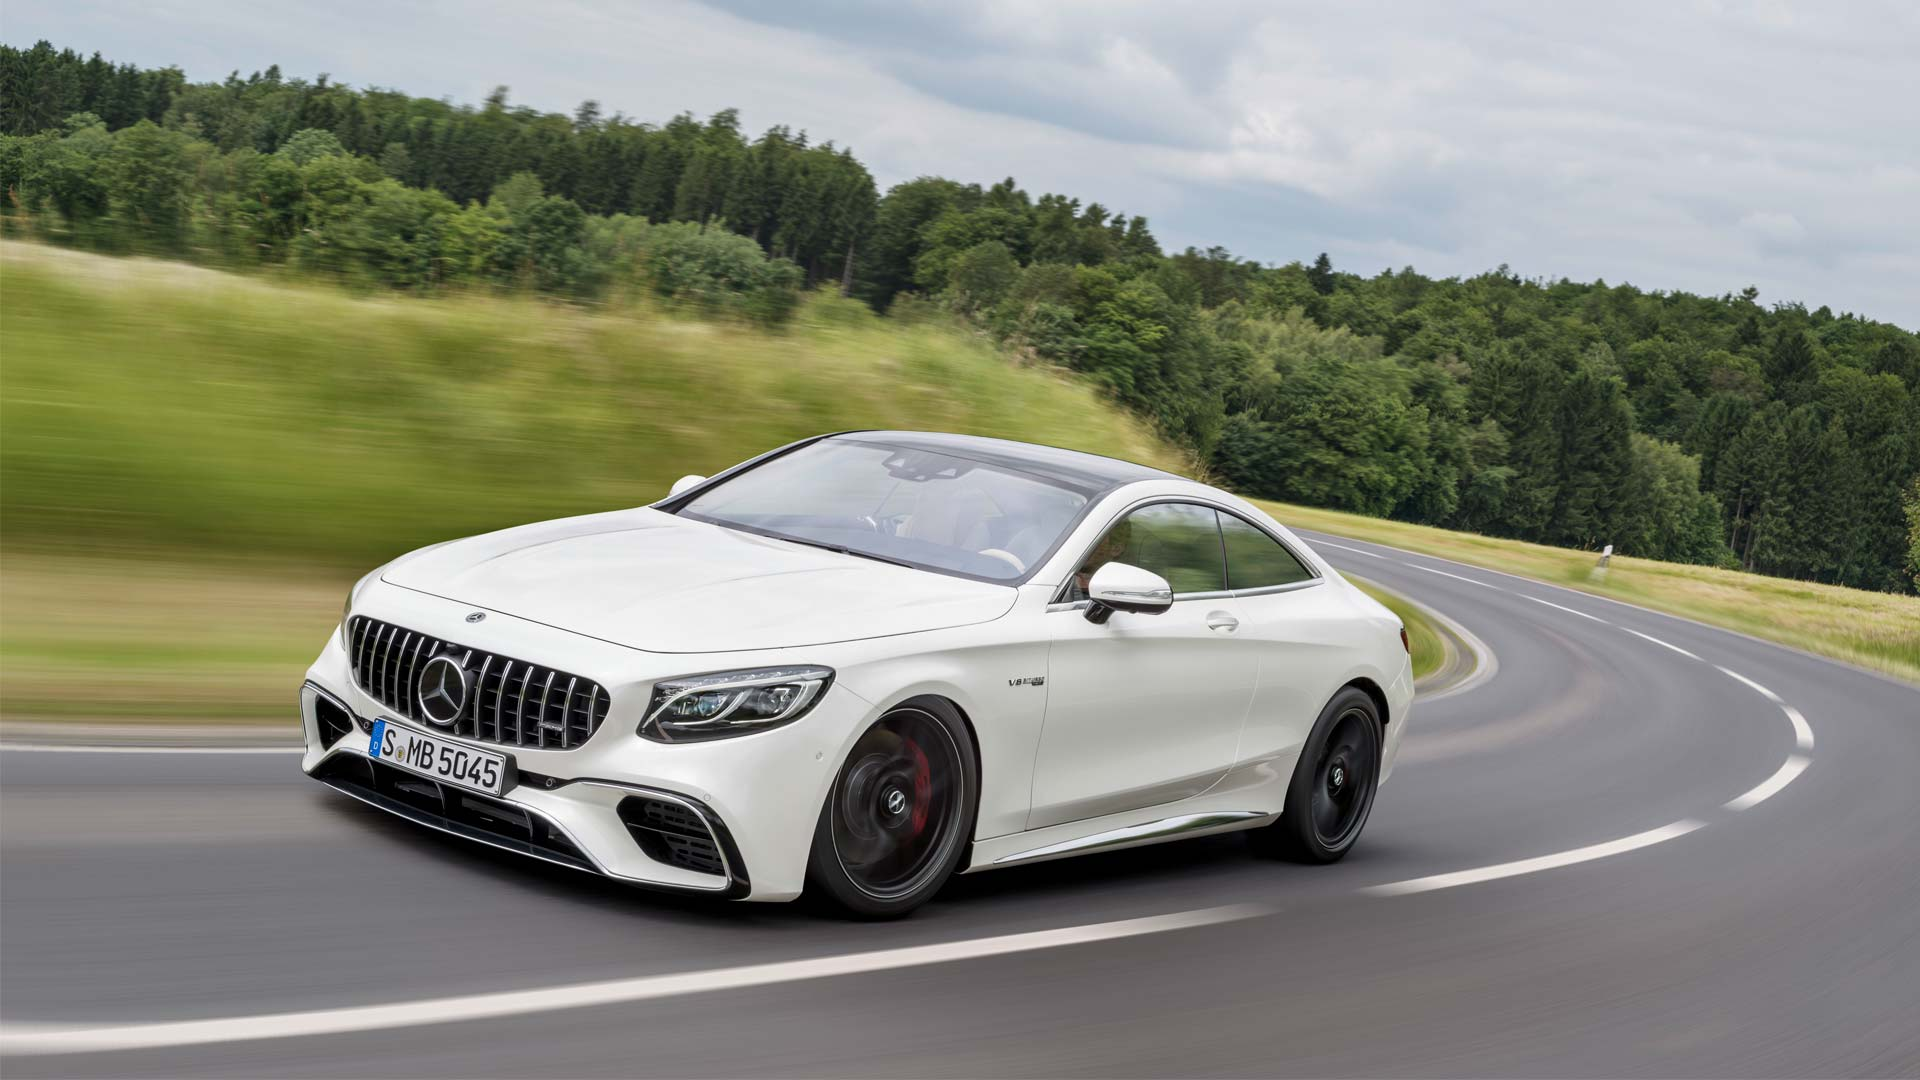 New Mercedes Amg S 63 And S 65 Coupe And Cabriolet